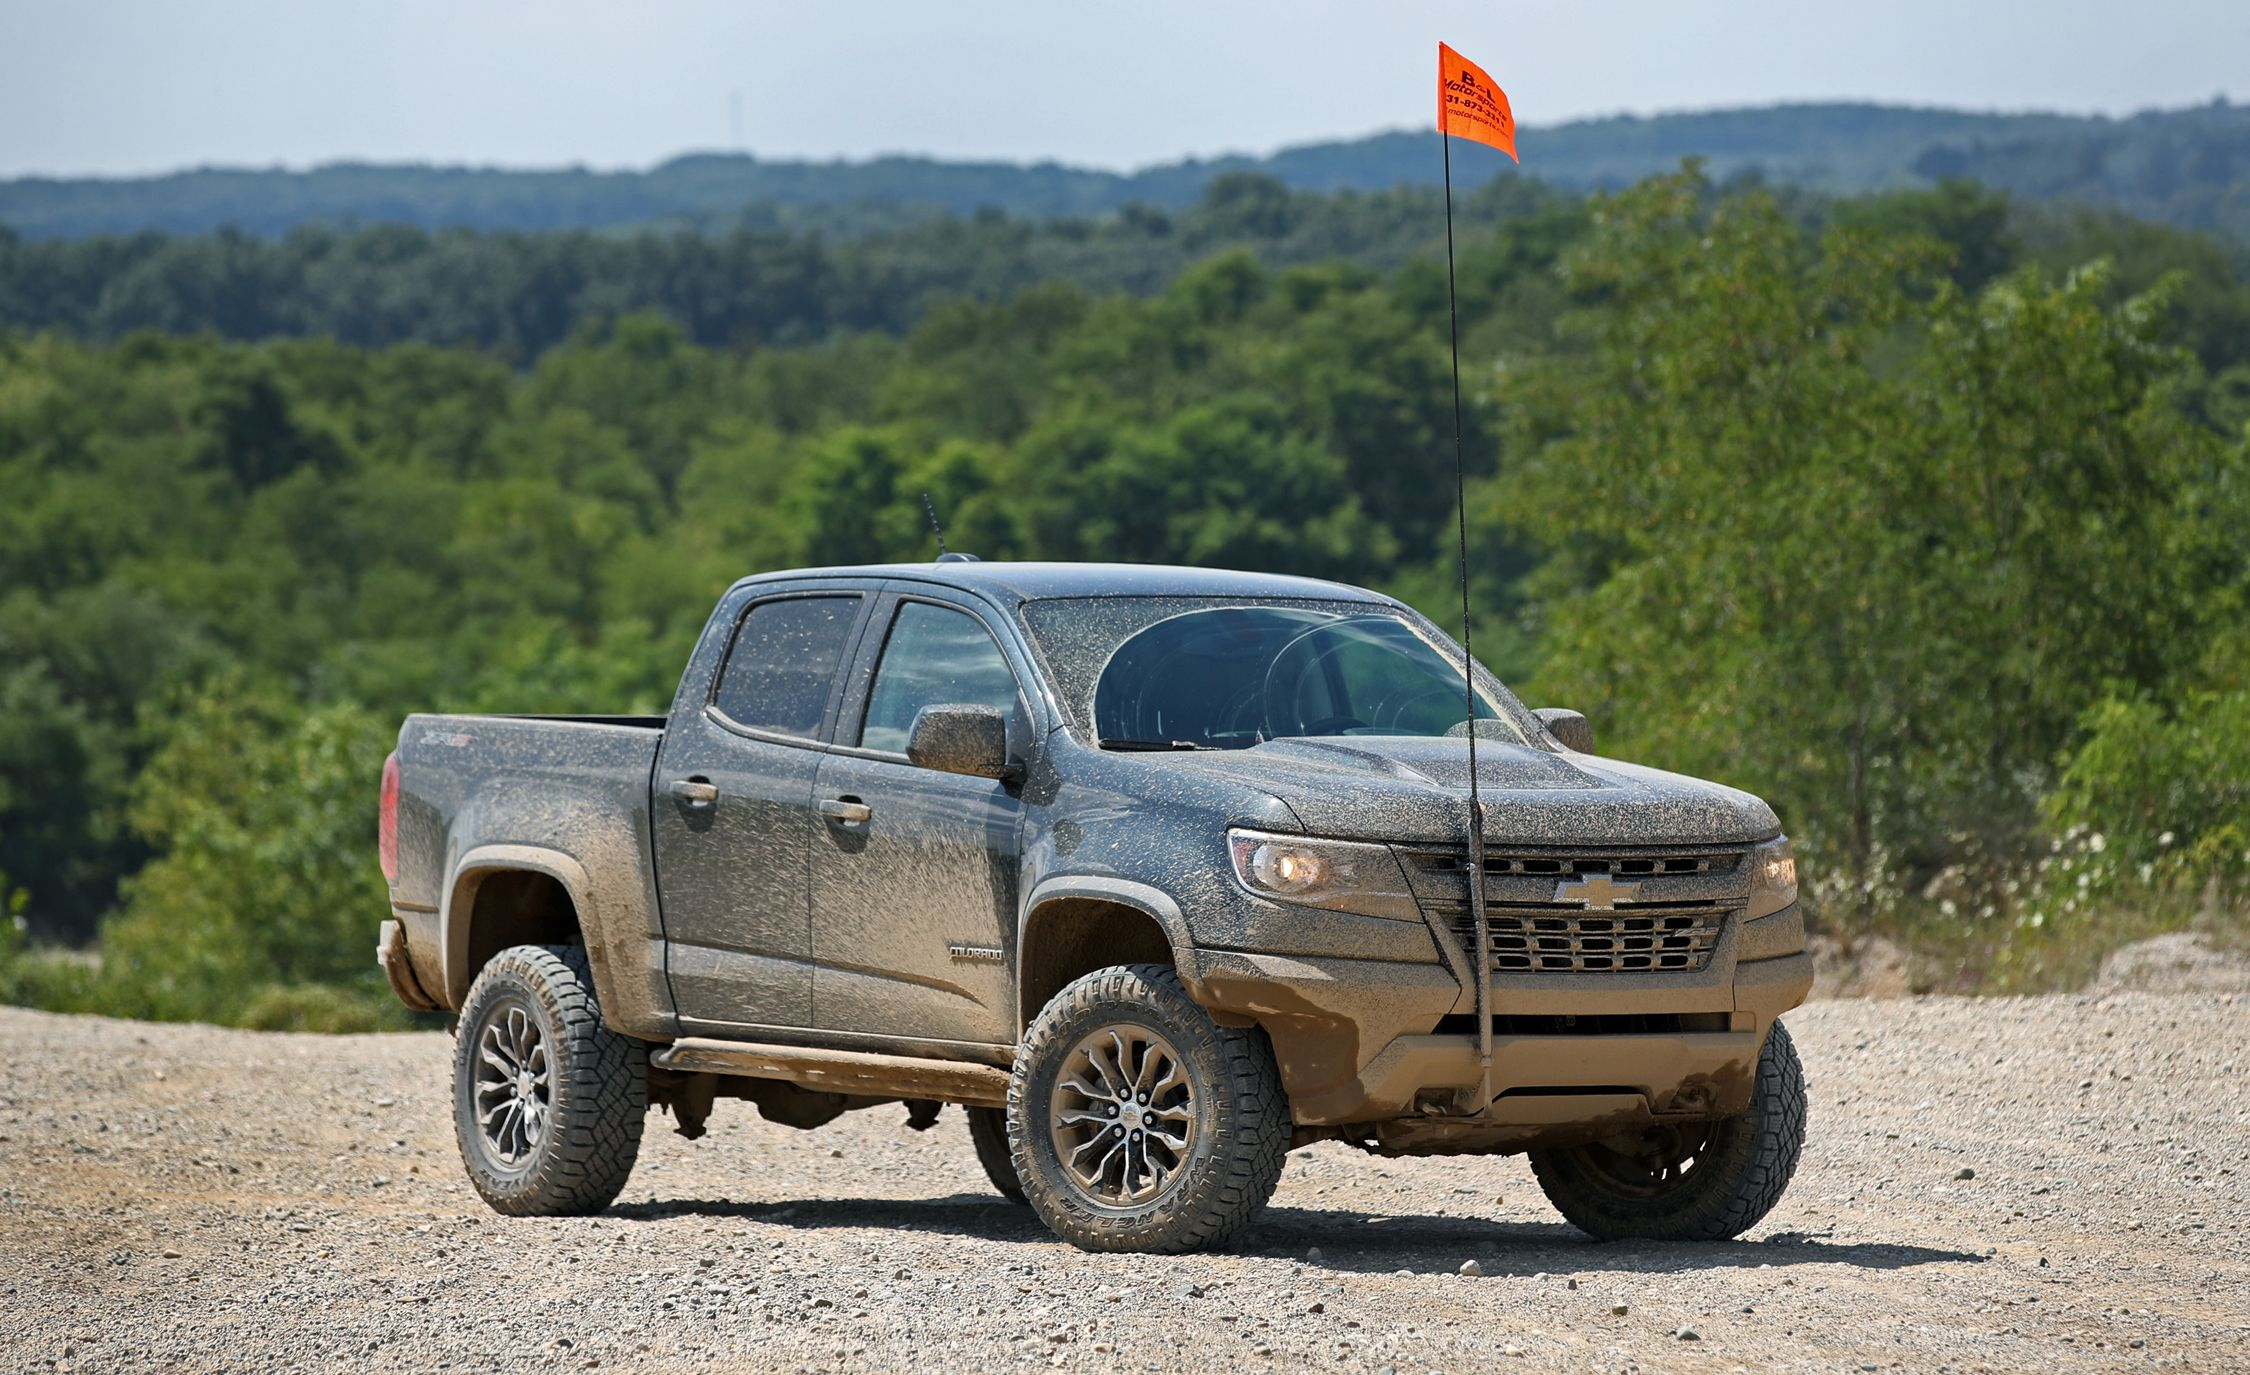 2018 chevrolet colorado engine and transmission review car and rh caranddriver com duramax diesel-manual transmission for sale chevrolet duramax diesel manual transmission for sale